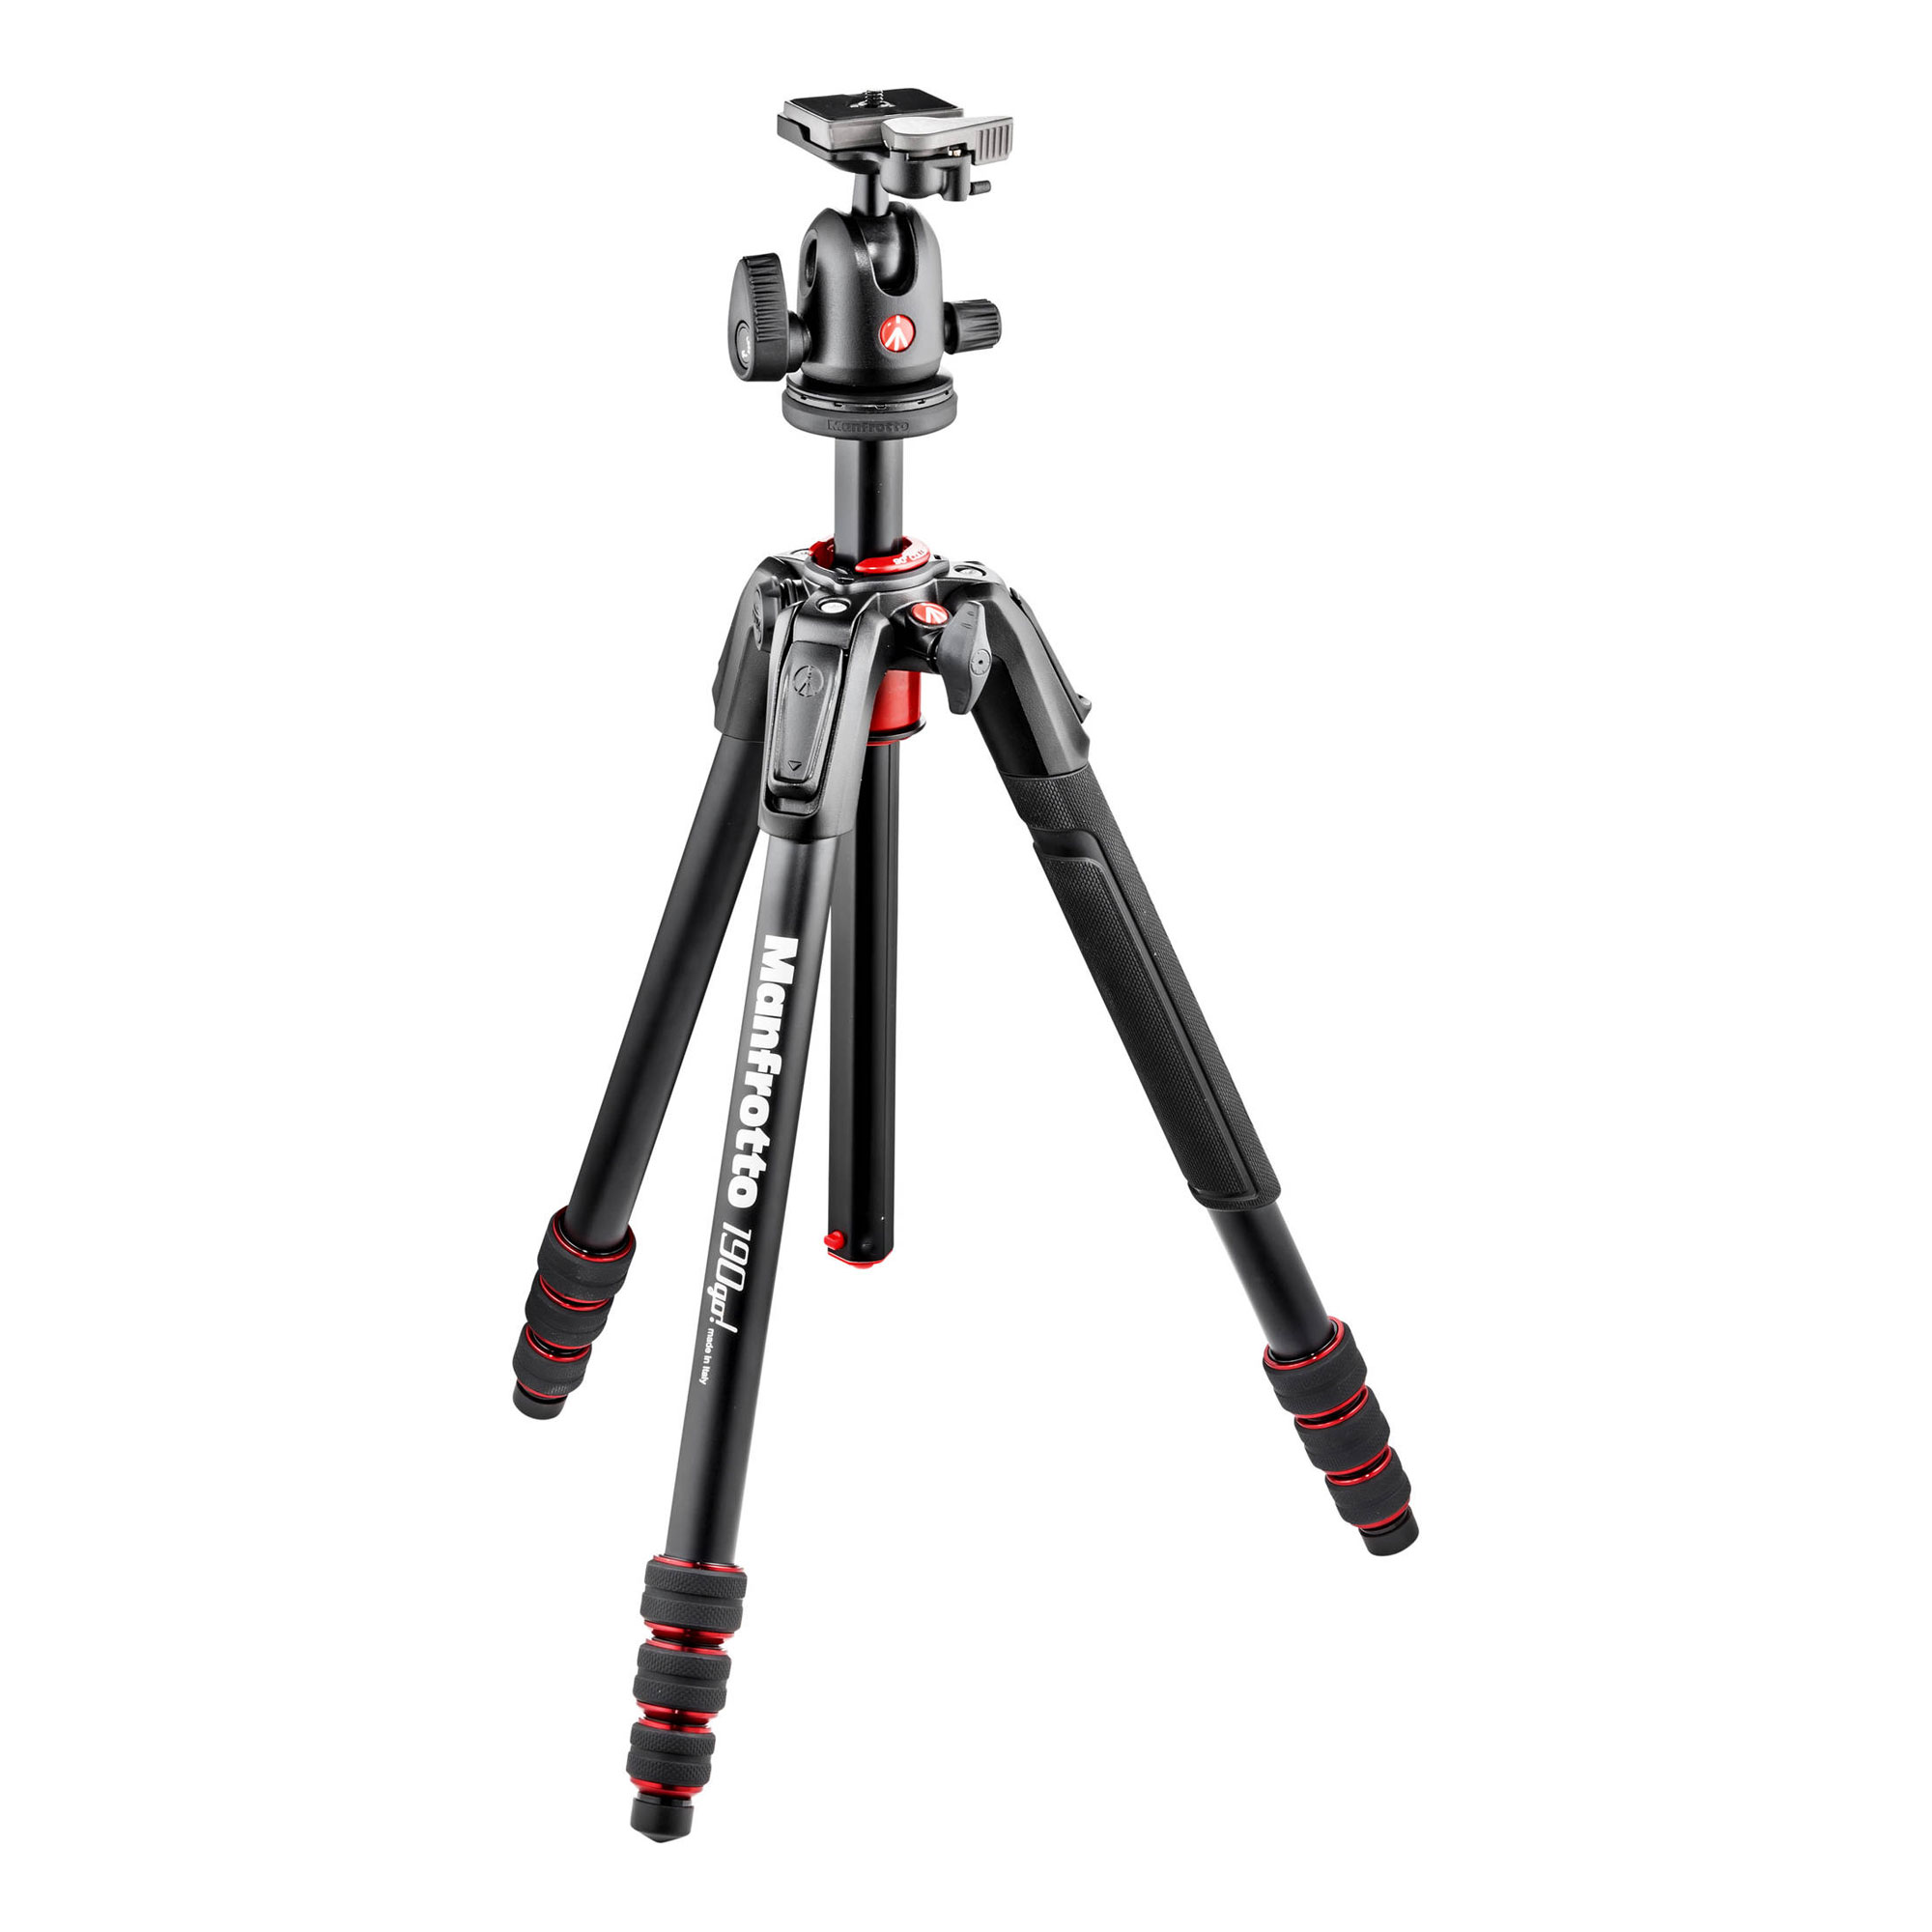 190Go Aluminum Tripod Kit with Ball Head